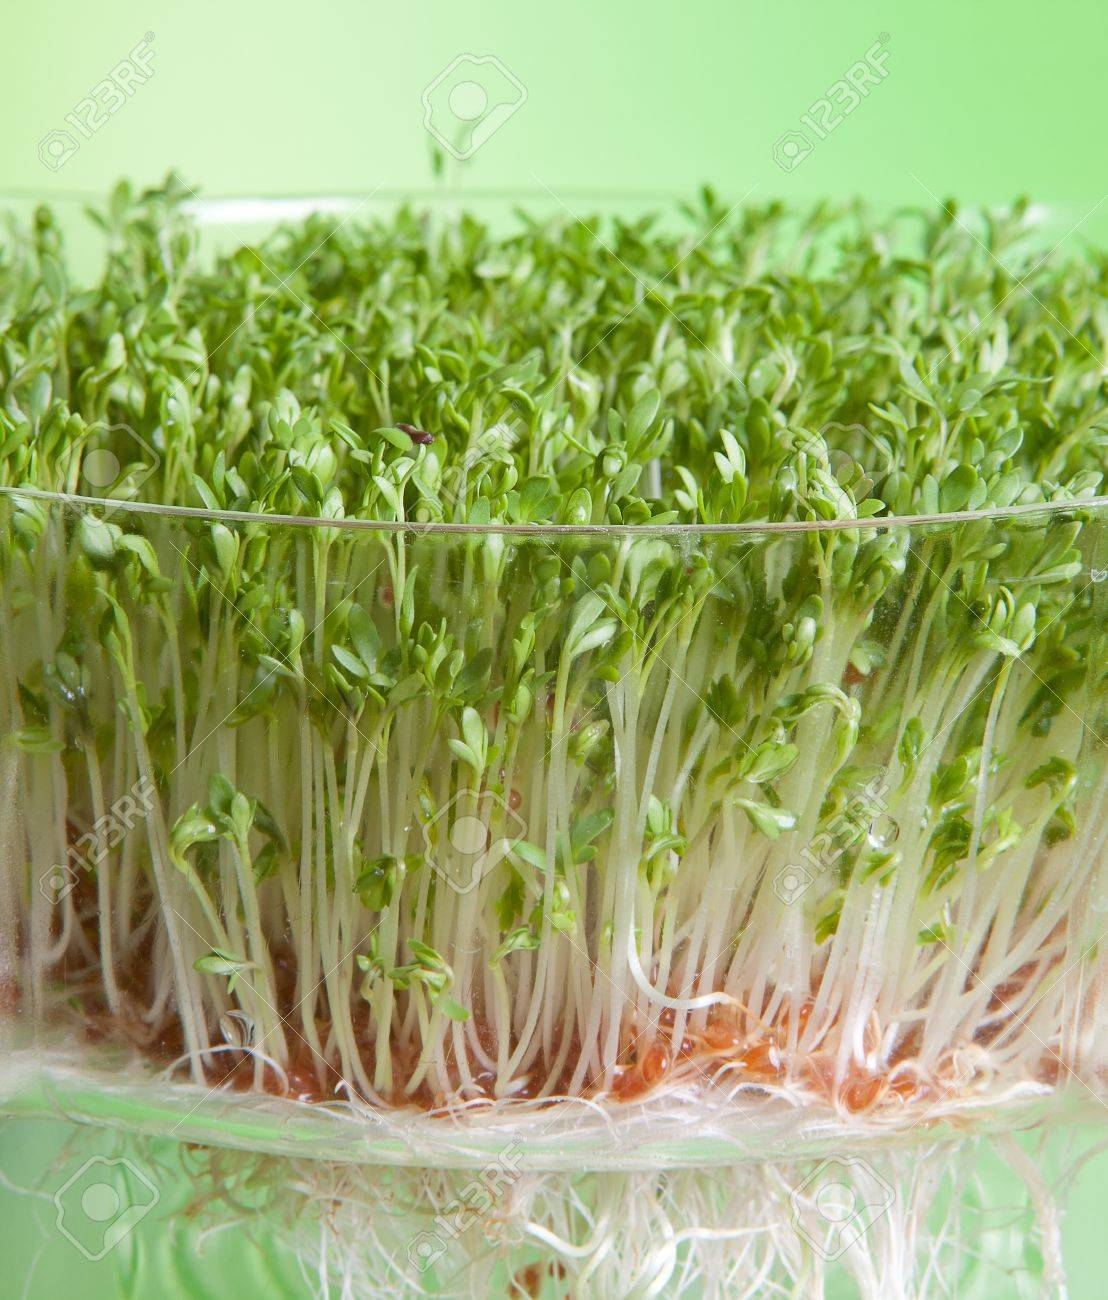 Garden cress sprouts for a healthy diet Stock Photo - 14873071